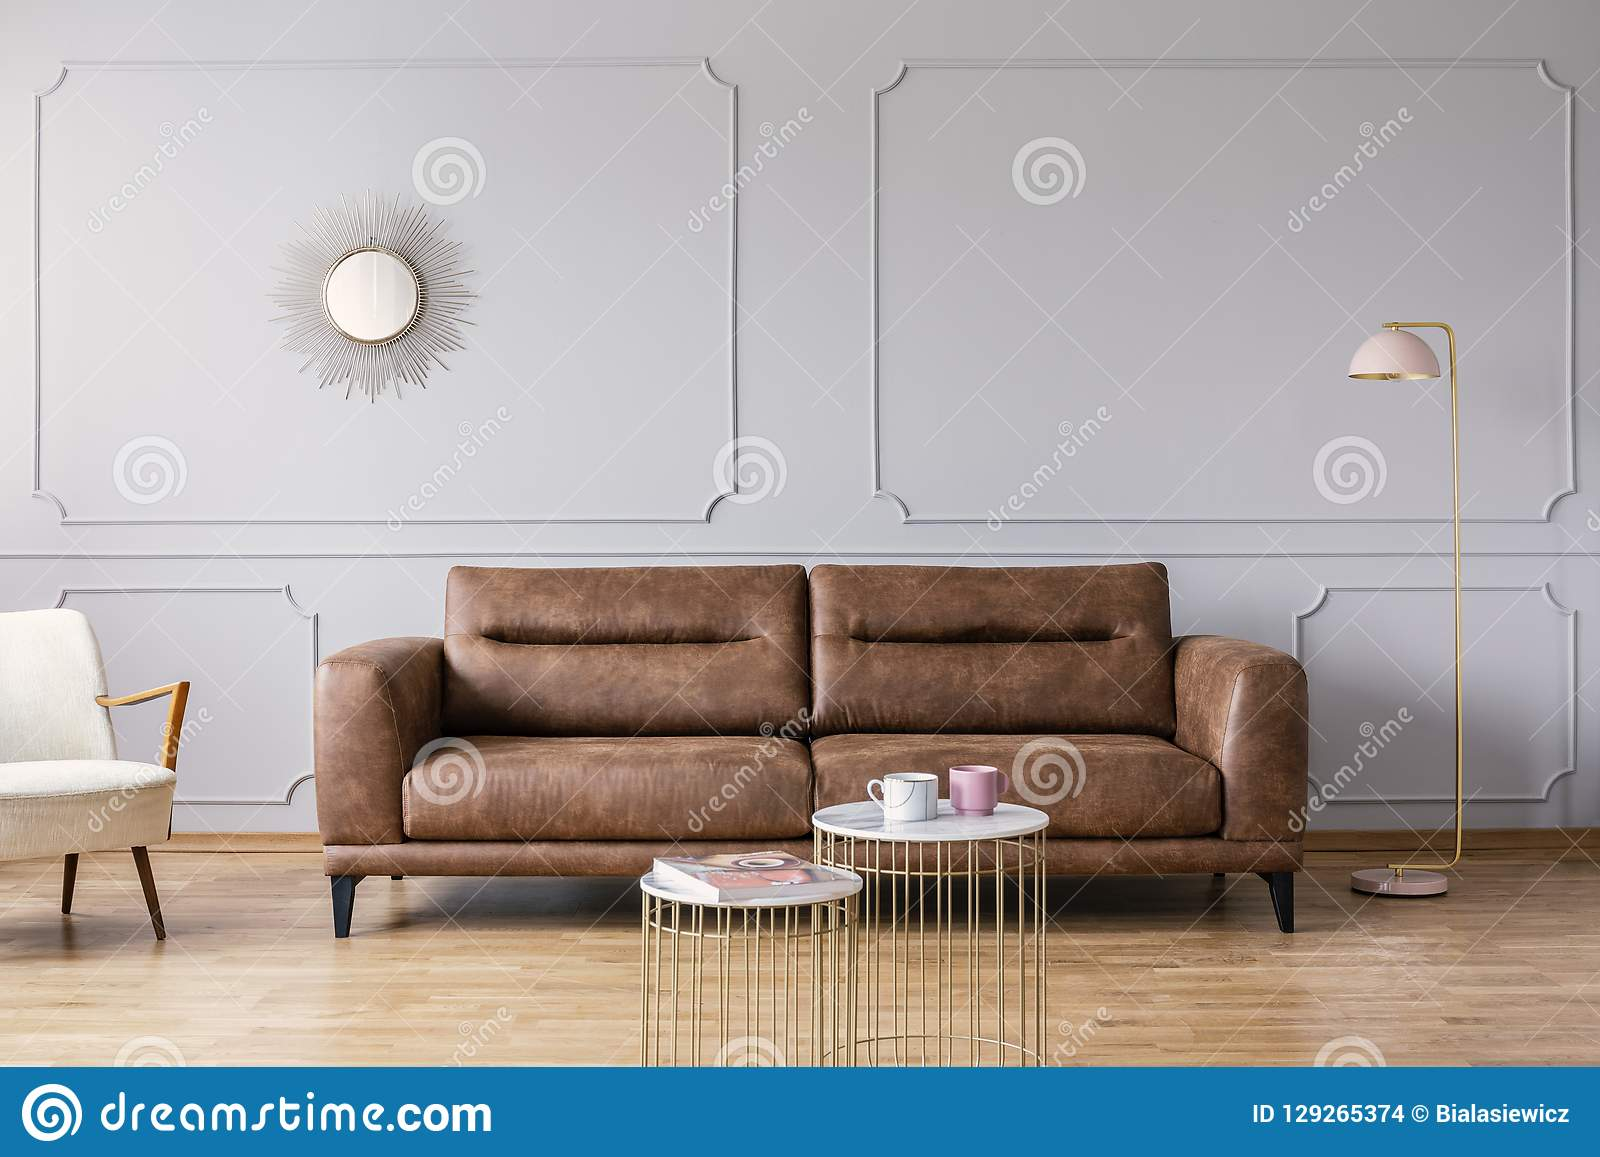 Gold Tables In Front Of Leather Sofa In Grey Elegant Living